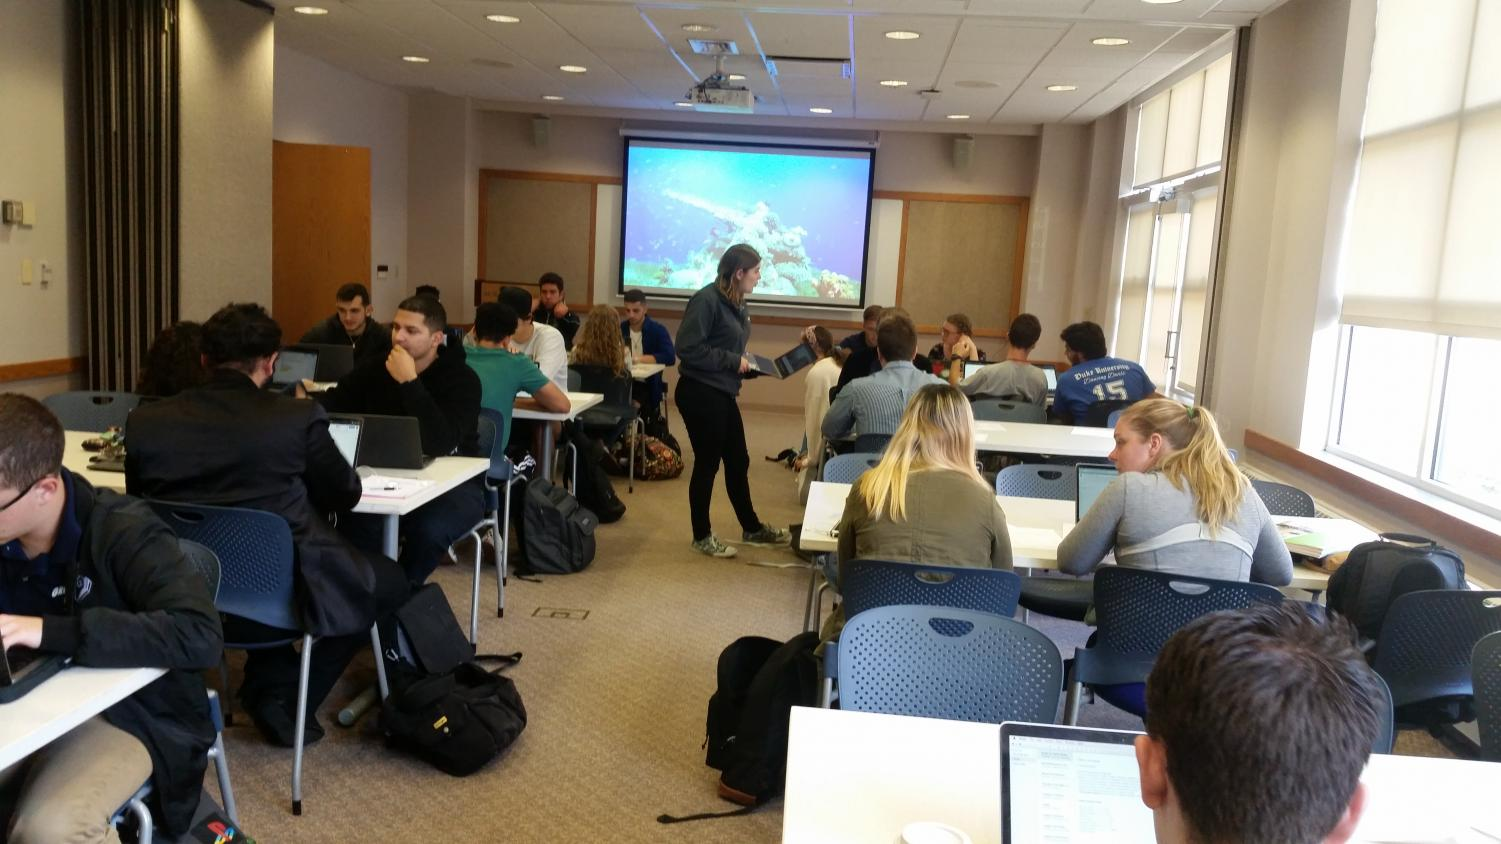 Students from a first-year writing seminar and the digital rhetorics class working in the United, Brethrens, & Church Rooms during the National Week on Writing. Credit: Gabrielle Stanley